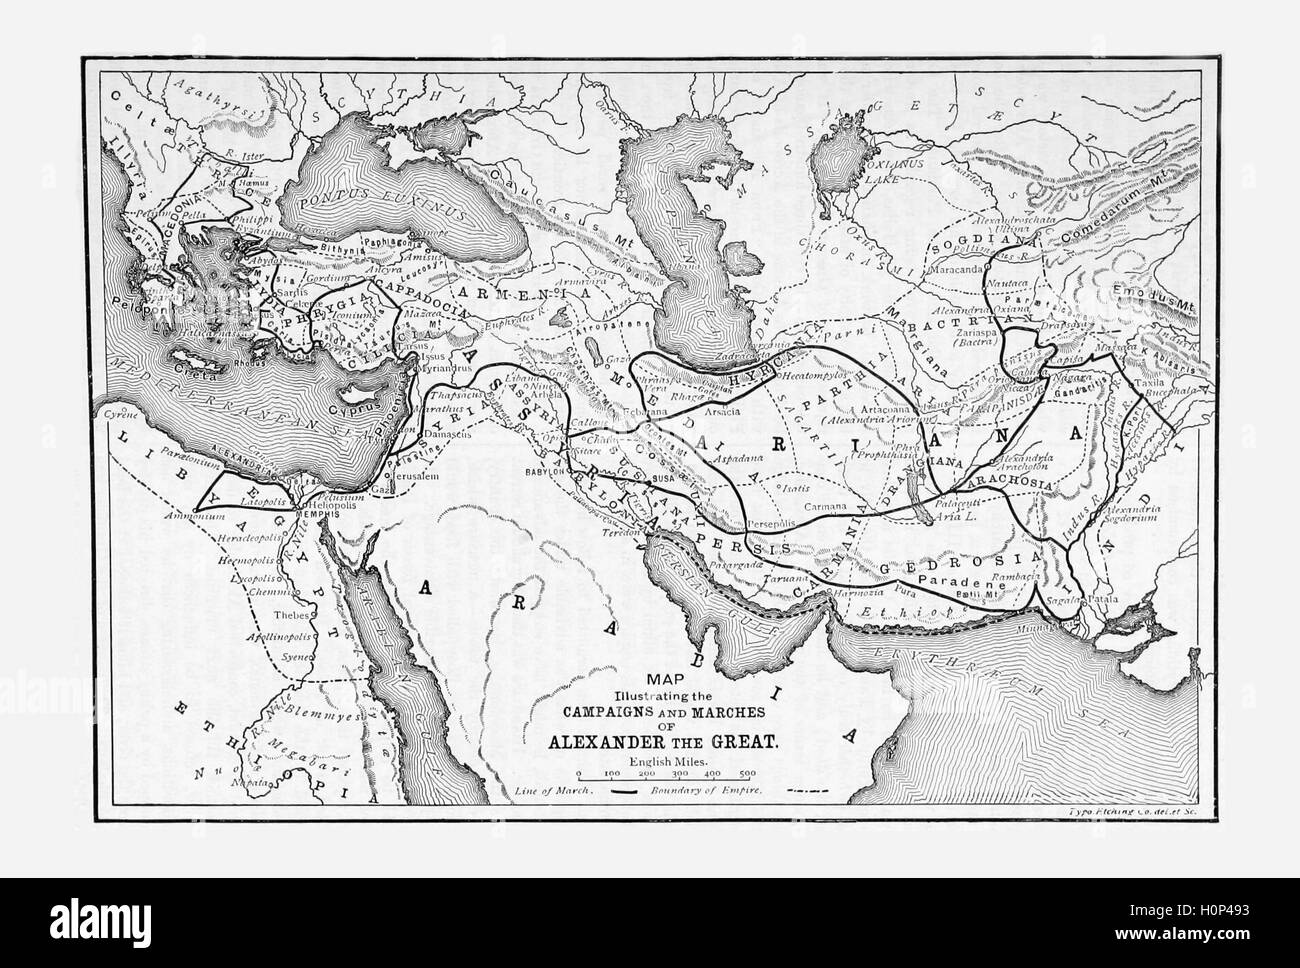 Map from antiquity showing the marches and campaigns of Alexander the Great.  Alexander III commonly known as Alexander - Stock Image